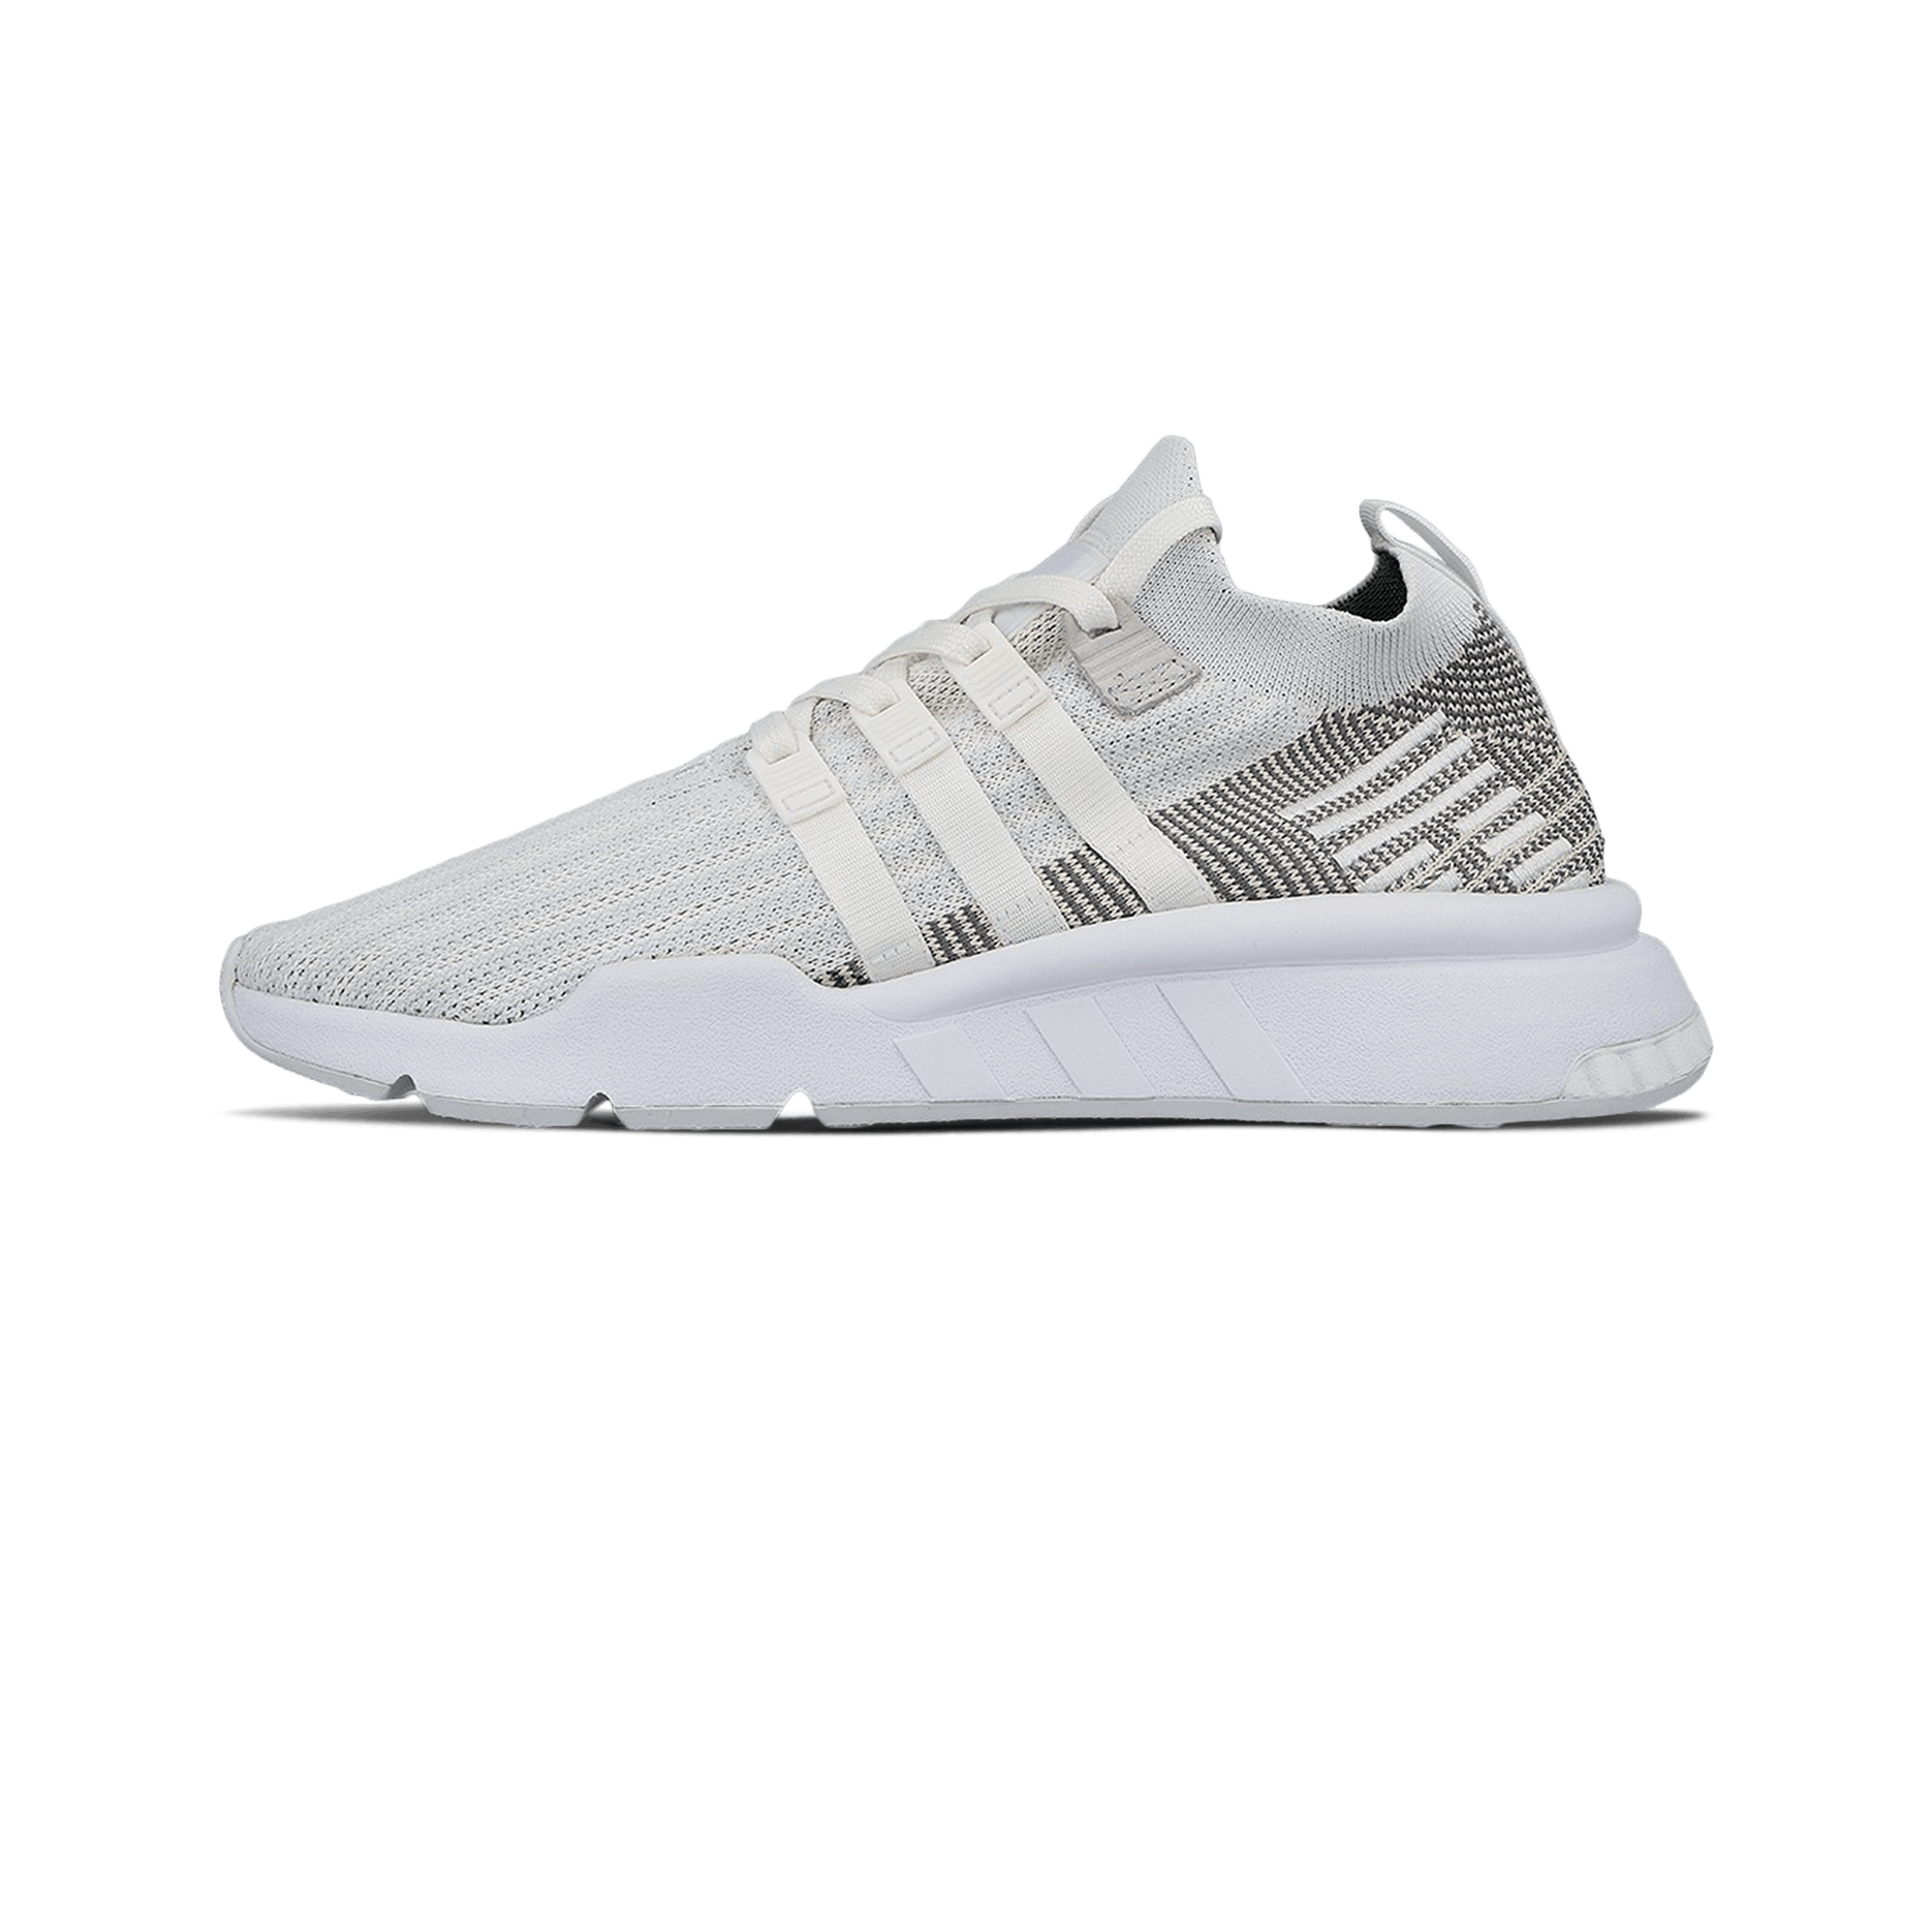 new styles 27364 9c525 adidas EQT Support Mid ADV footwear white / grey one - Men |  Holypopstore.com